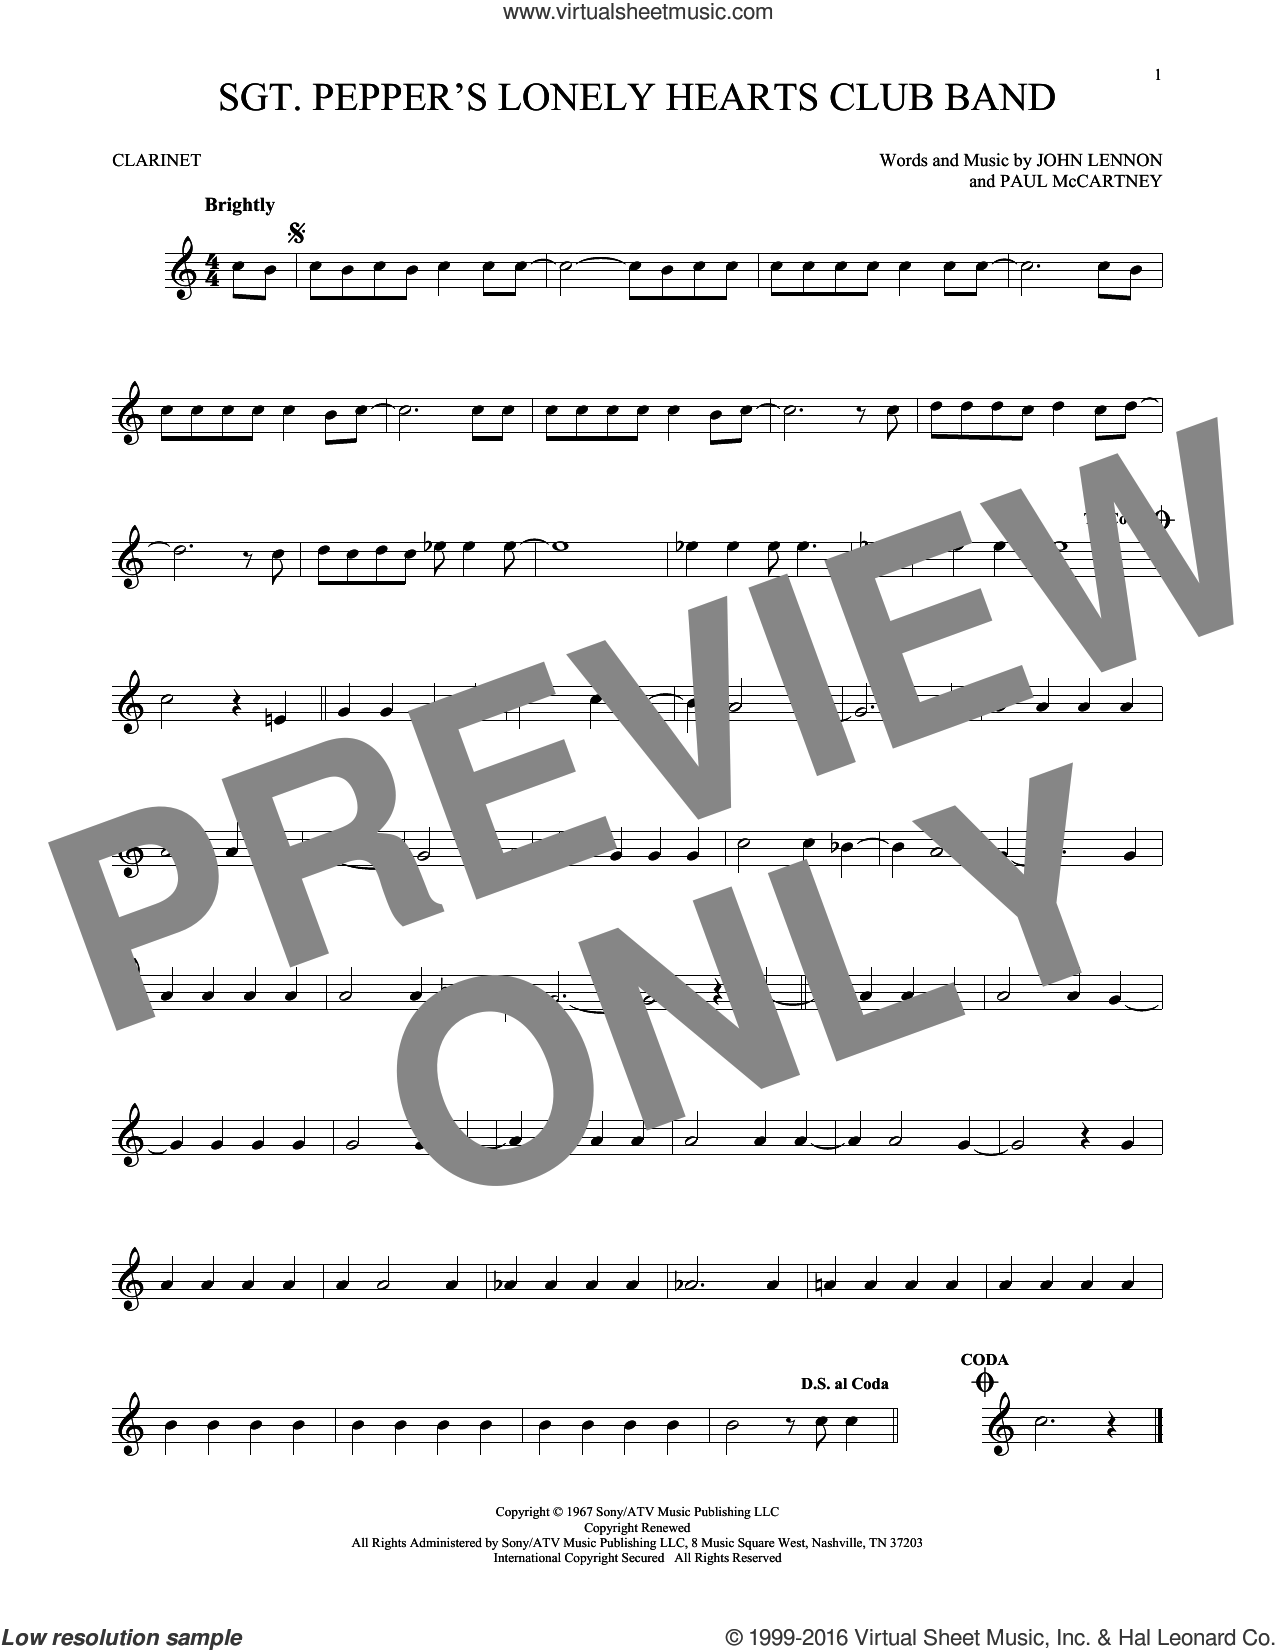 Sgt. Pepper's Lonely Hearts Club Band sheet music for clarinet solo by The Beatles, John Lennon and Paul McCartney, intermediate skill level